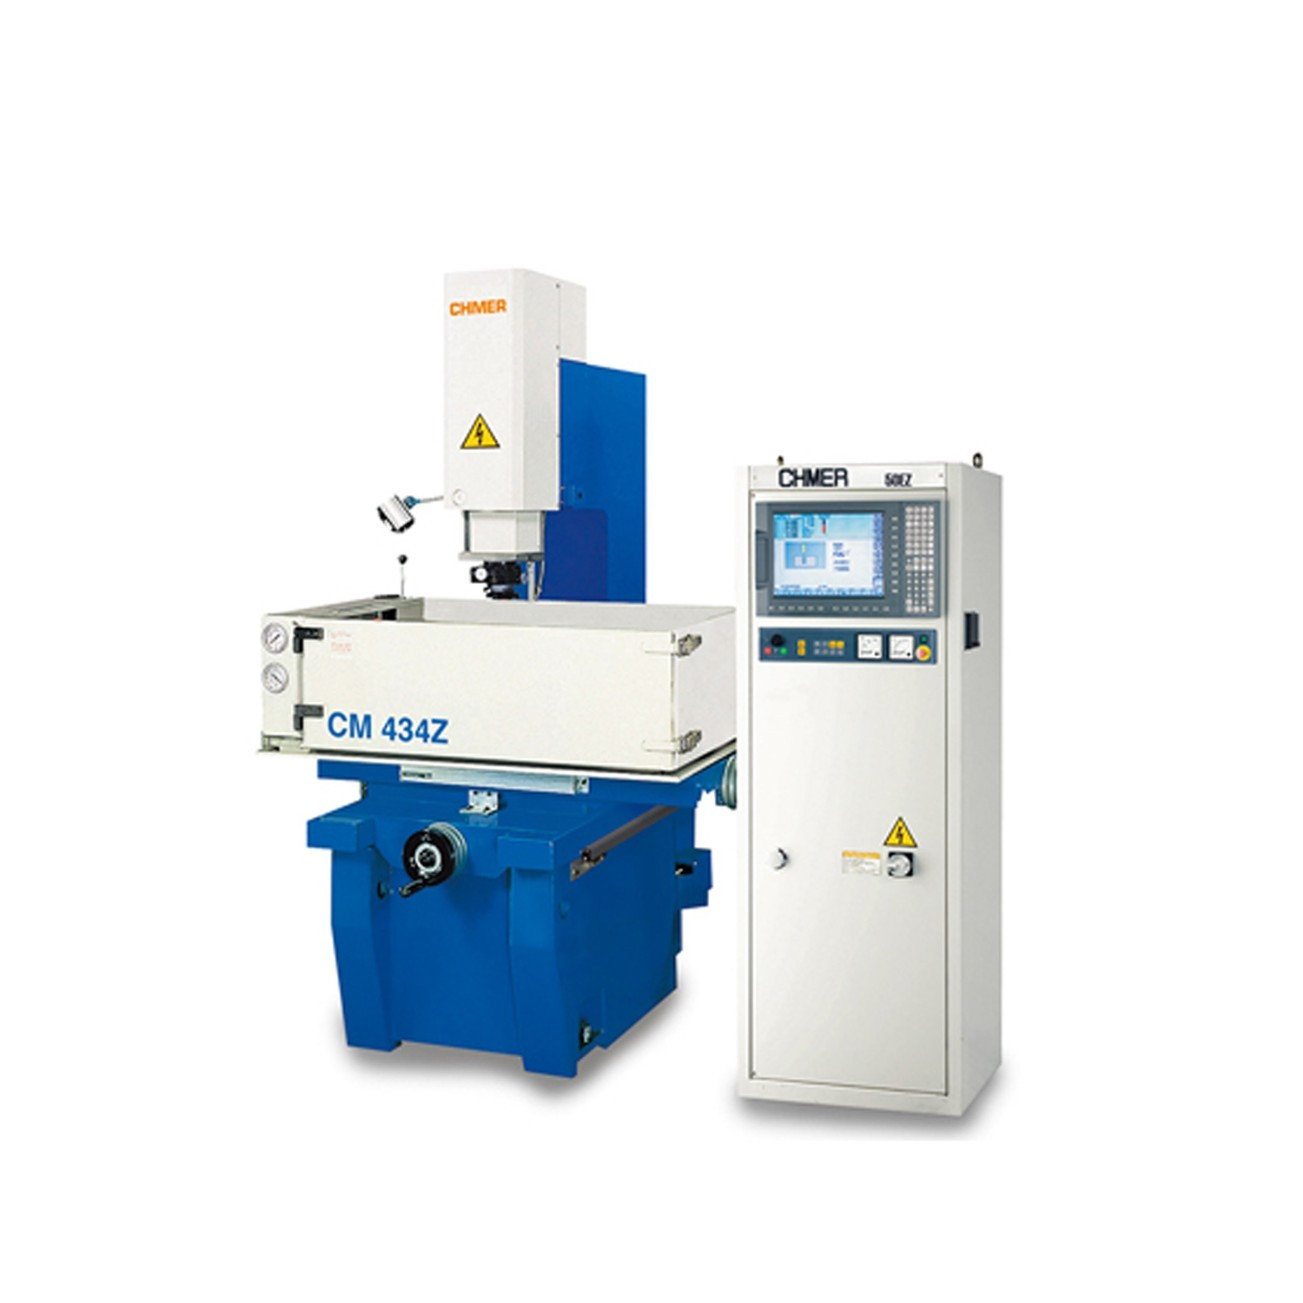 Spark Erosion Machines For Sale UK - Die Sink EDM Machines | EDM Plus